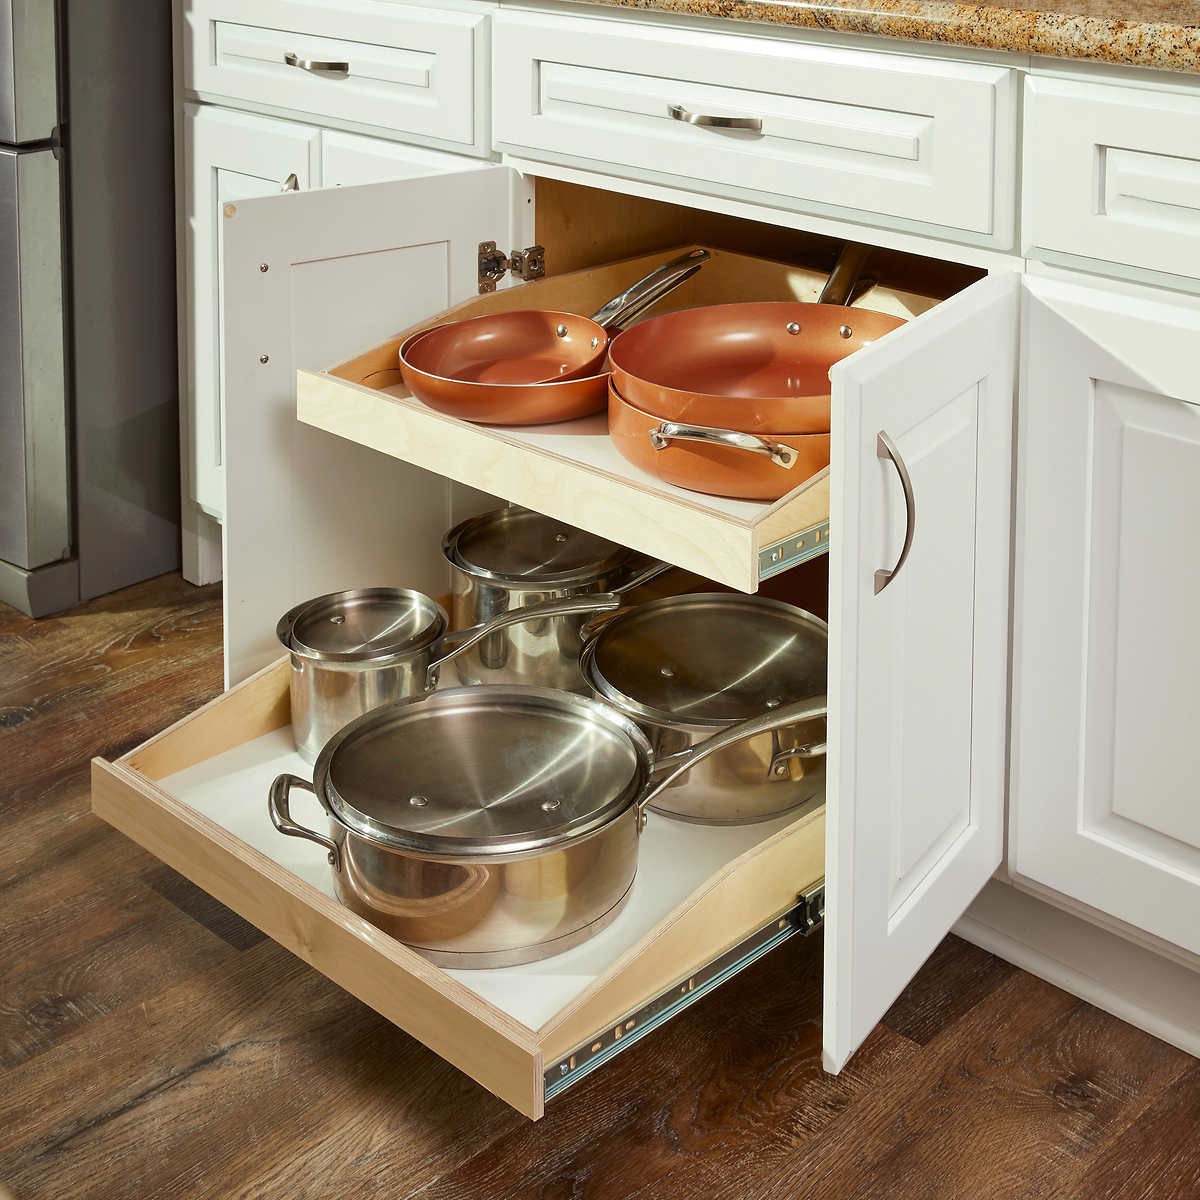 Pull Out Drawers For Kitchen Cabinets Made To Fit Slide out Shelves for Existing Cabinets by Slide A Shelf